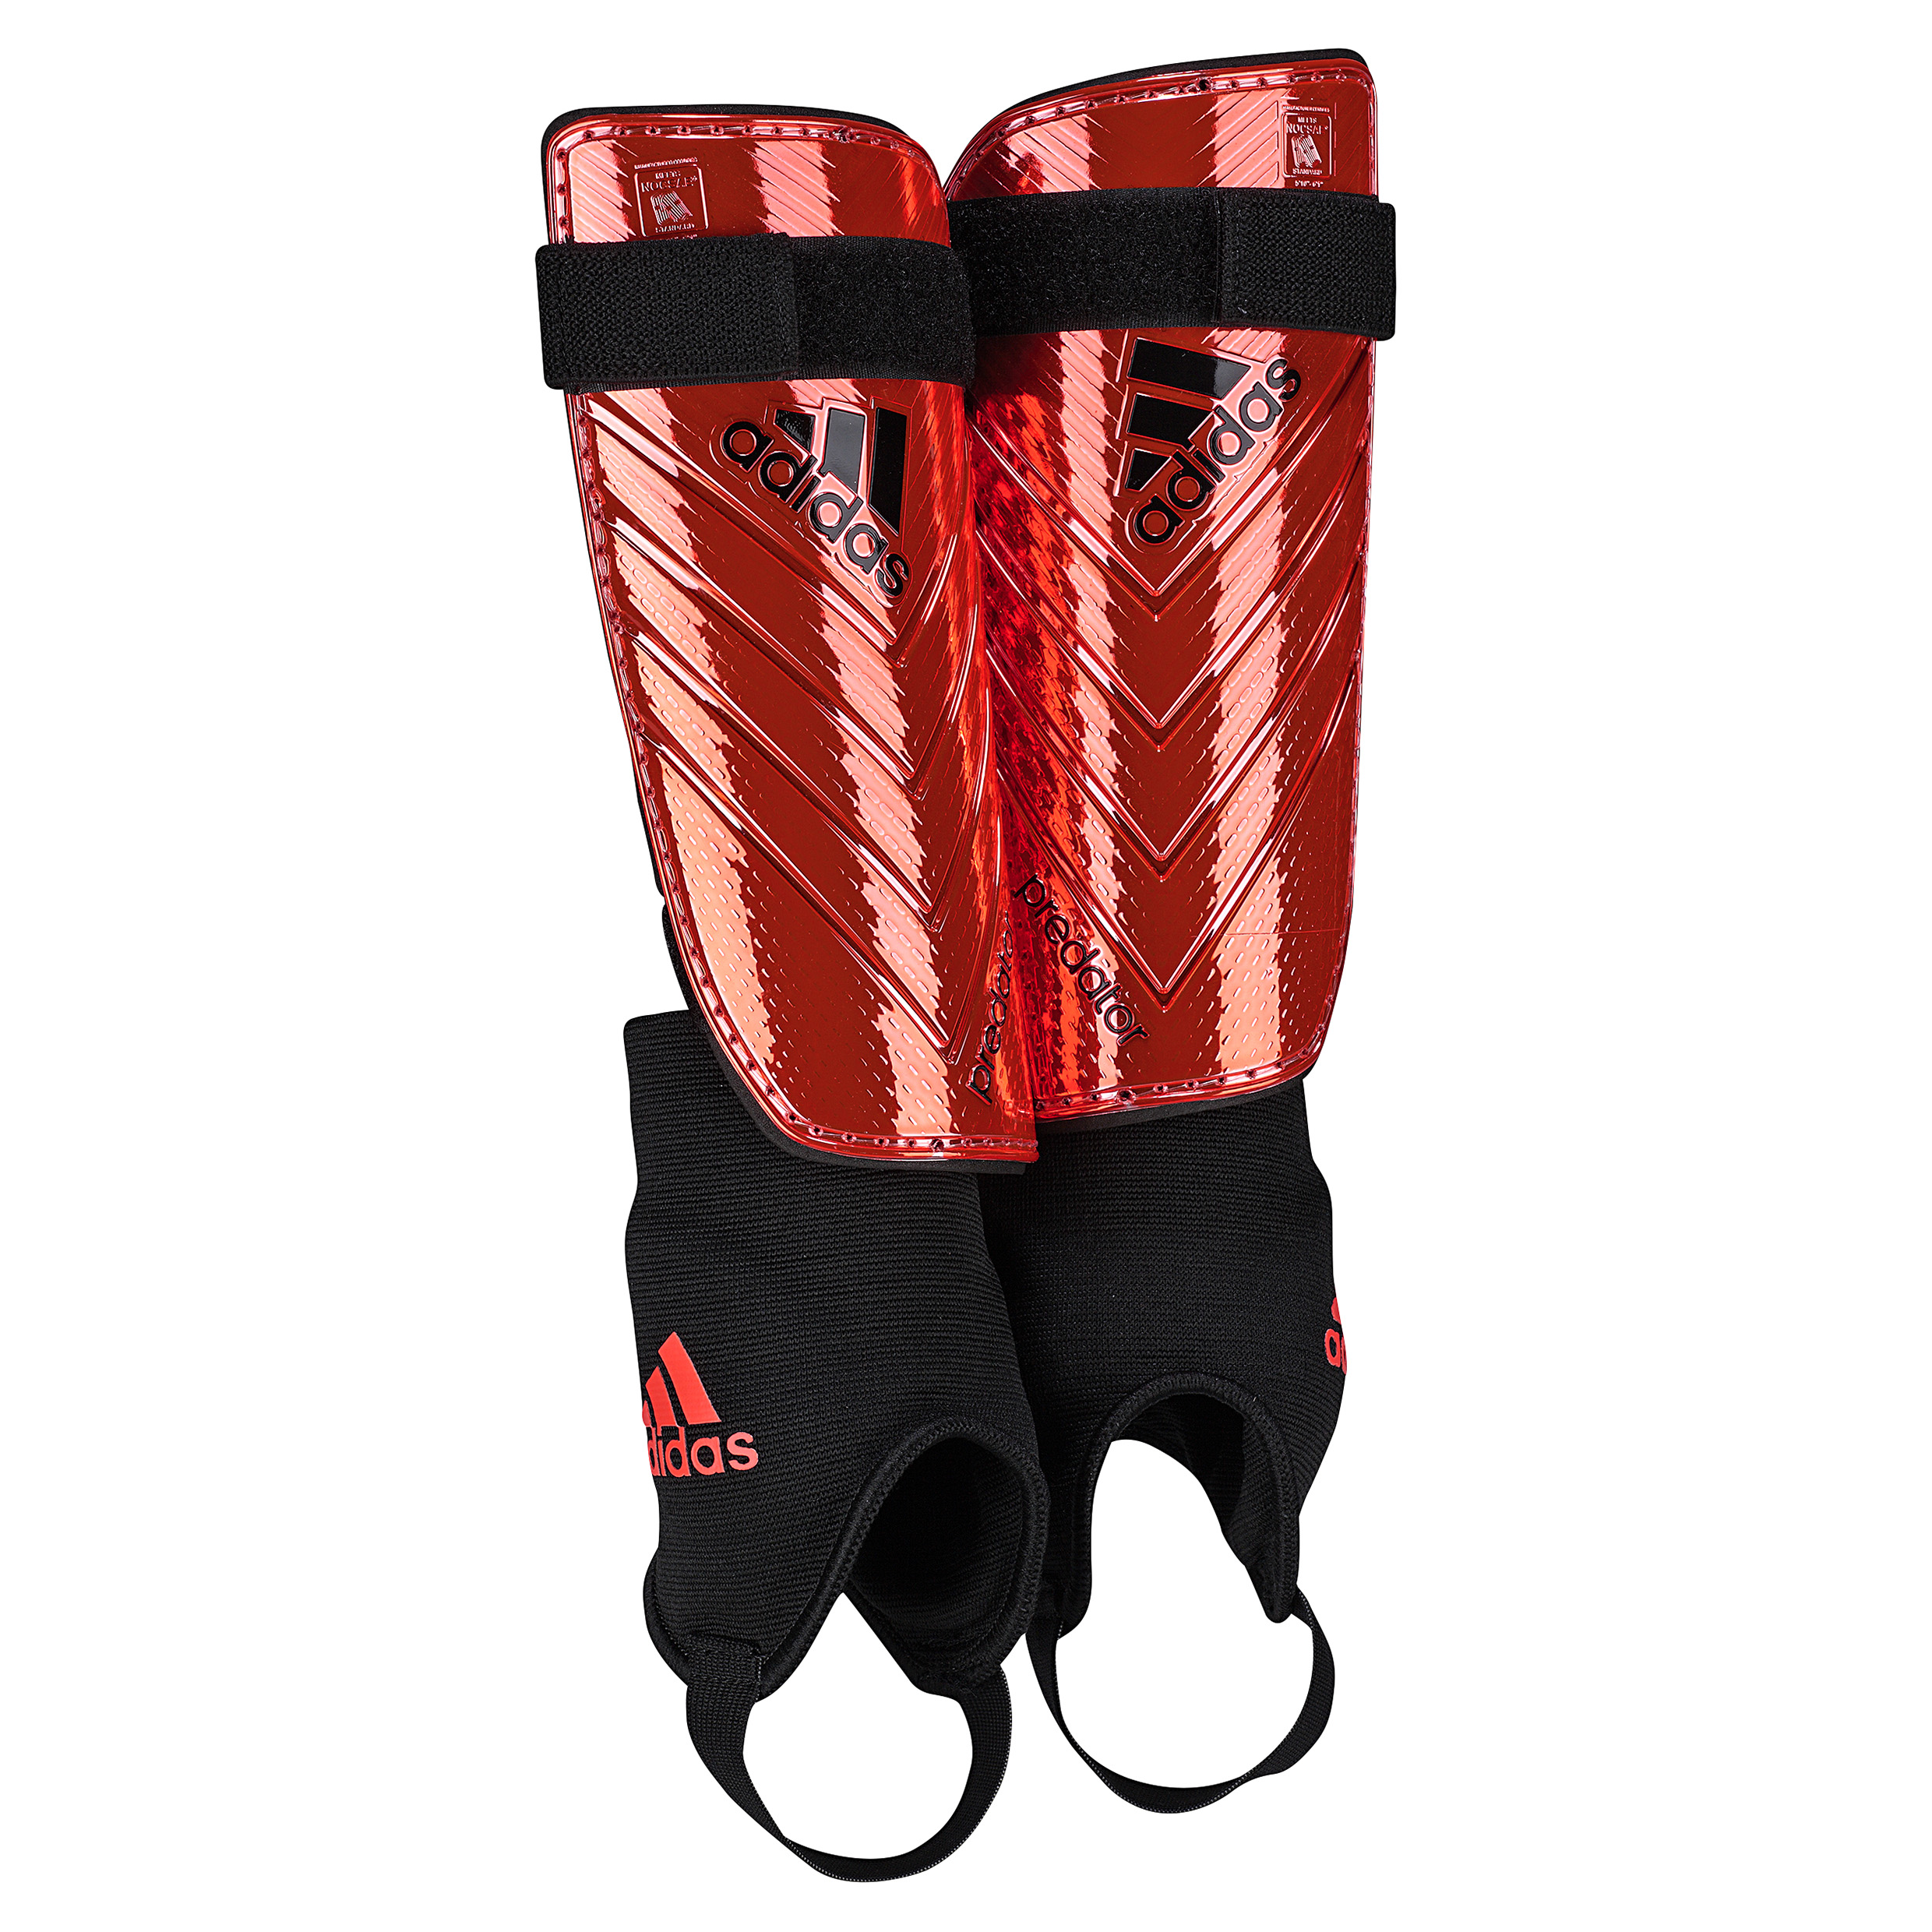 Adidas Predator DS Shinguards Orange